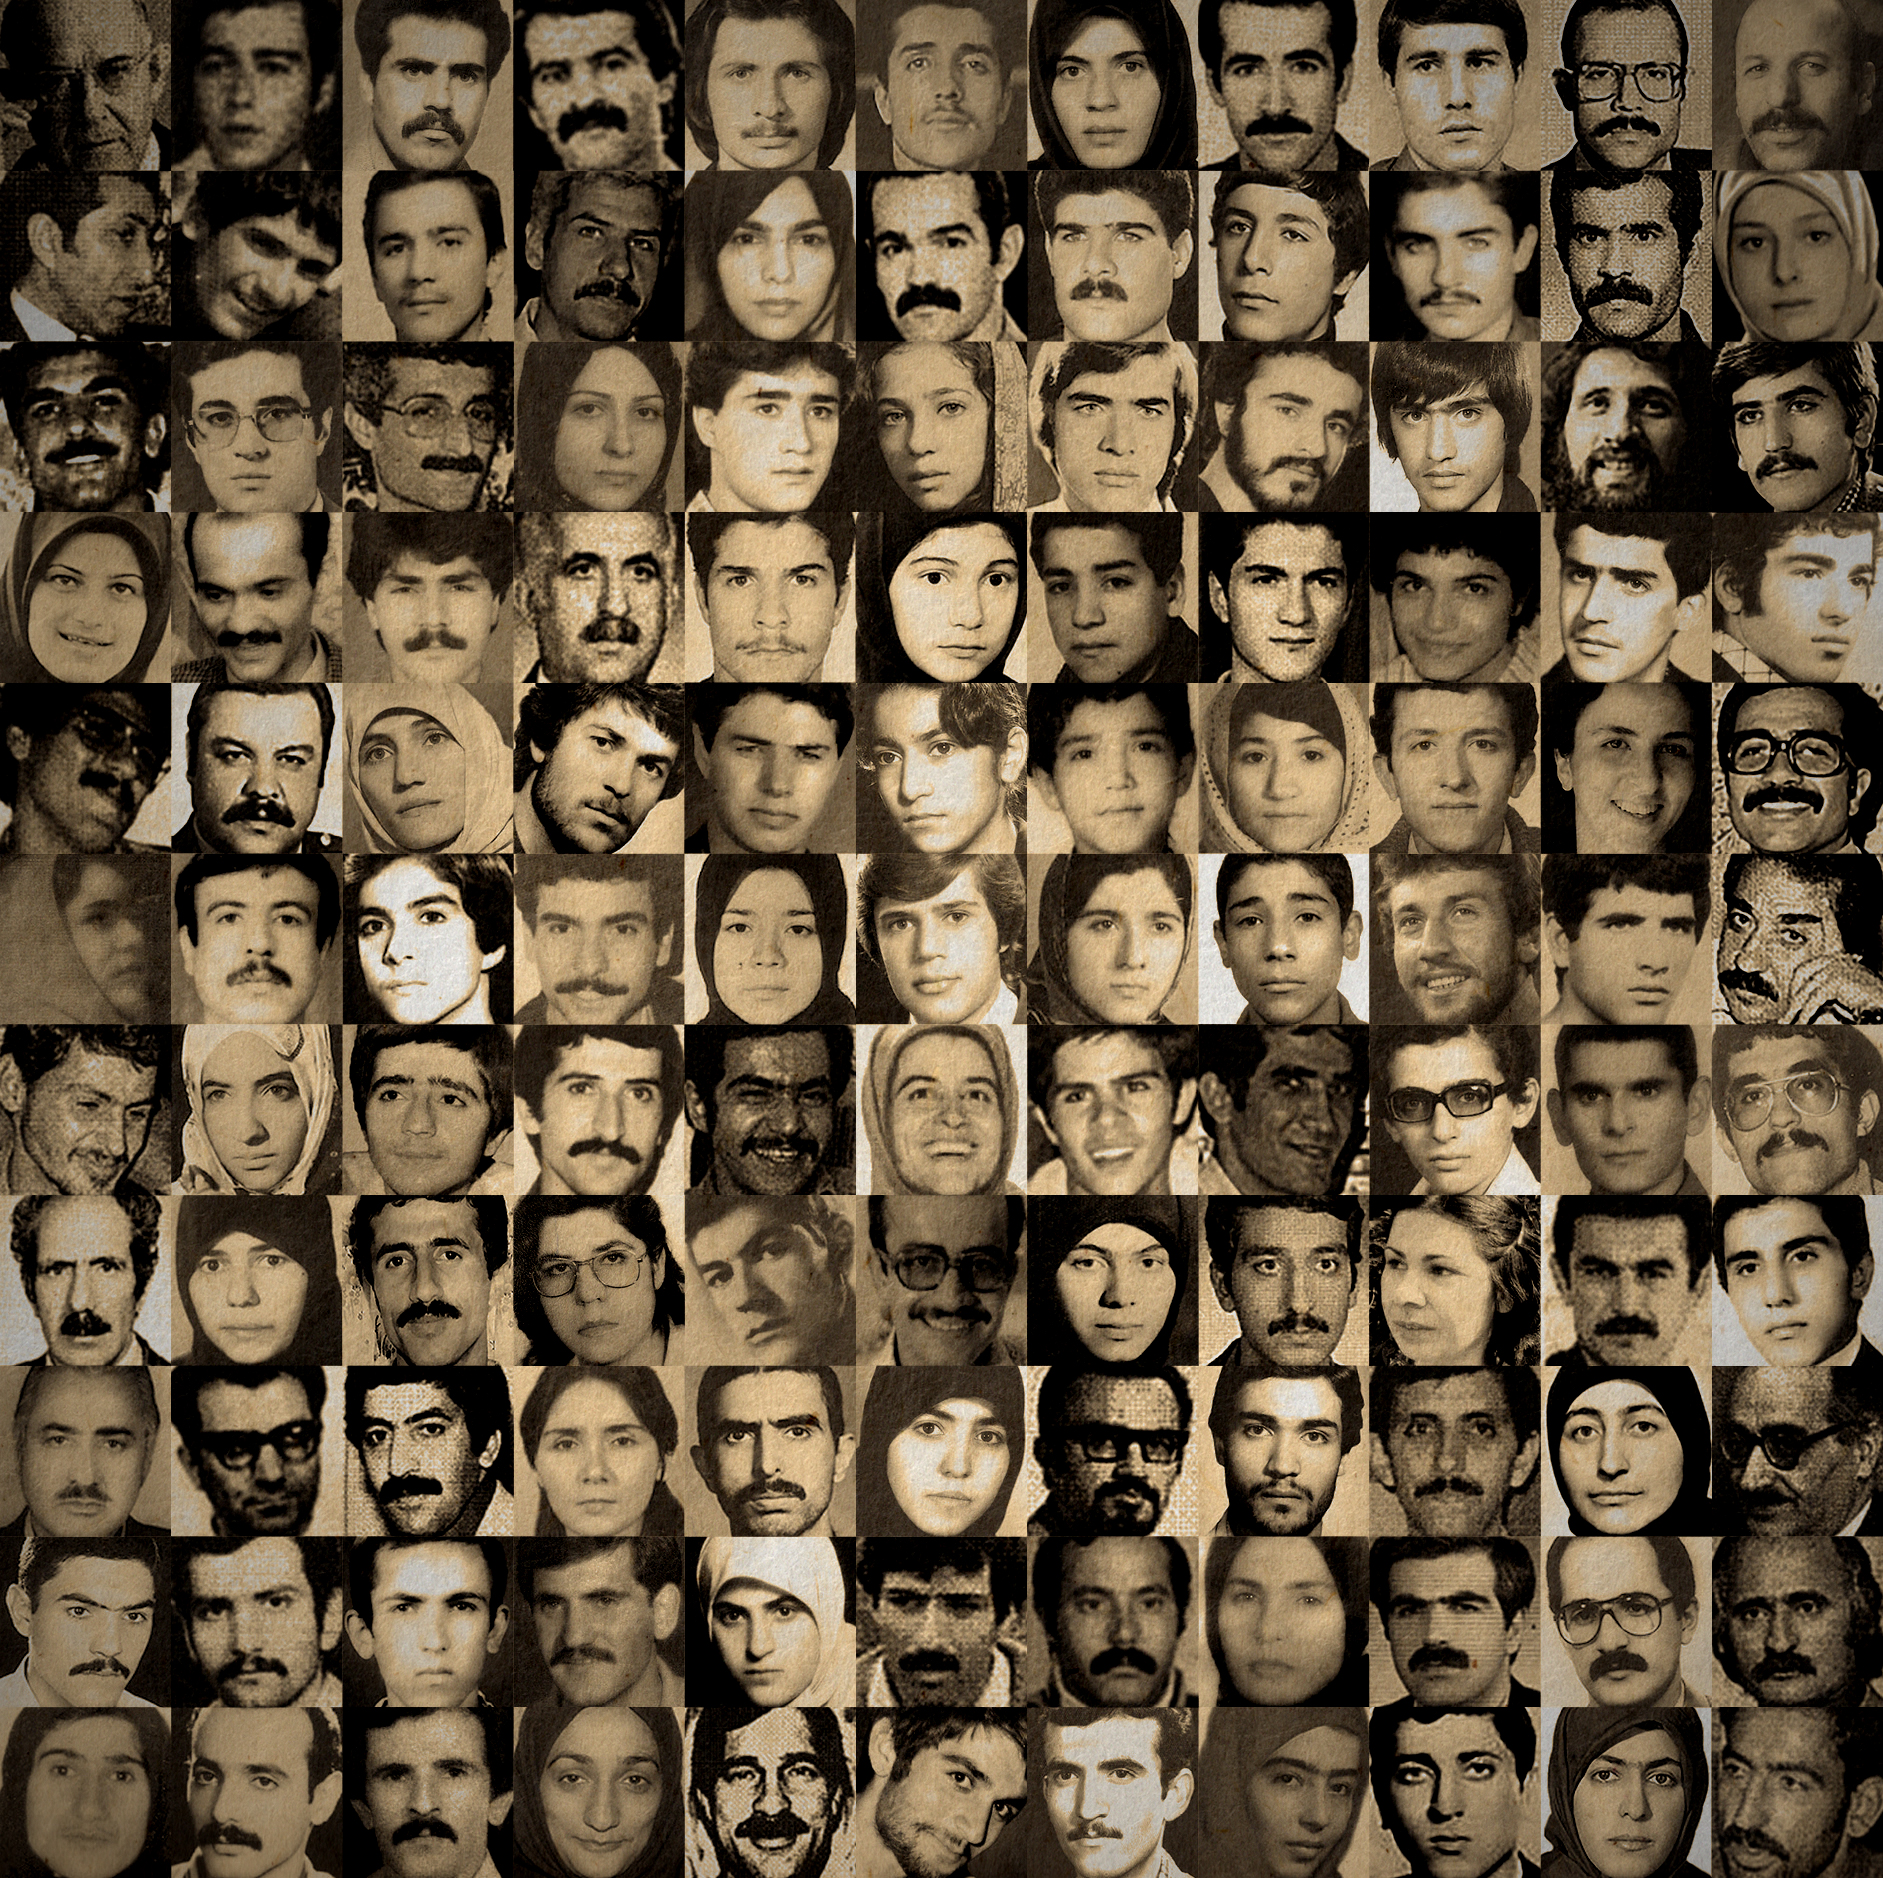 Iran committing crimes against humanity by concealing fate of thousands of slaughtered political dissidents